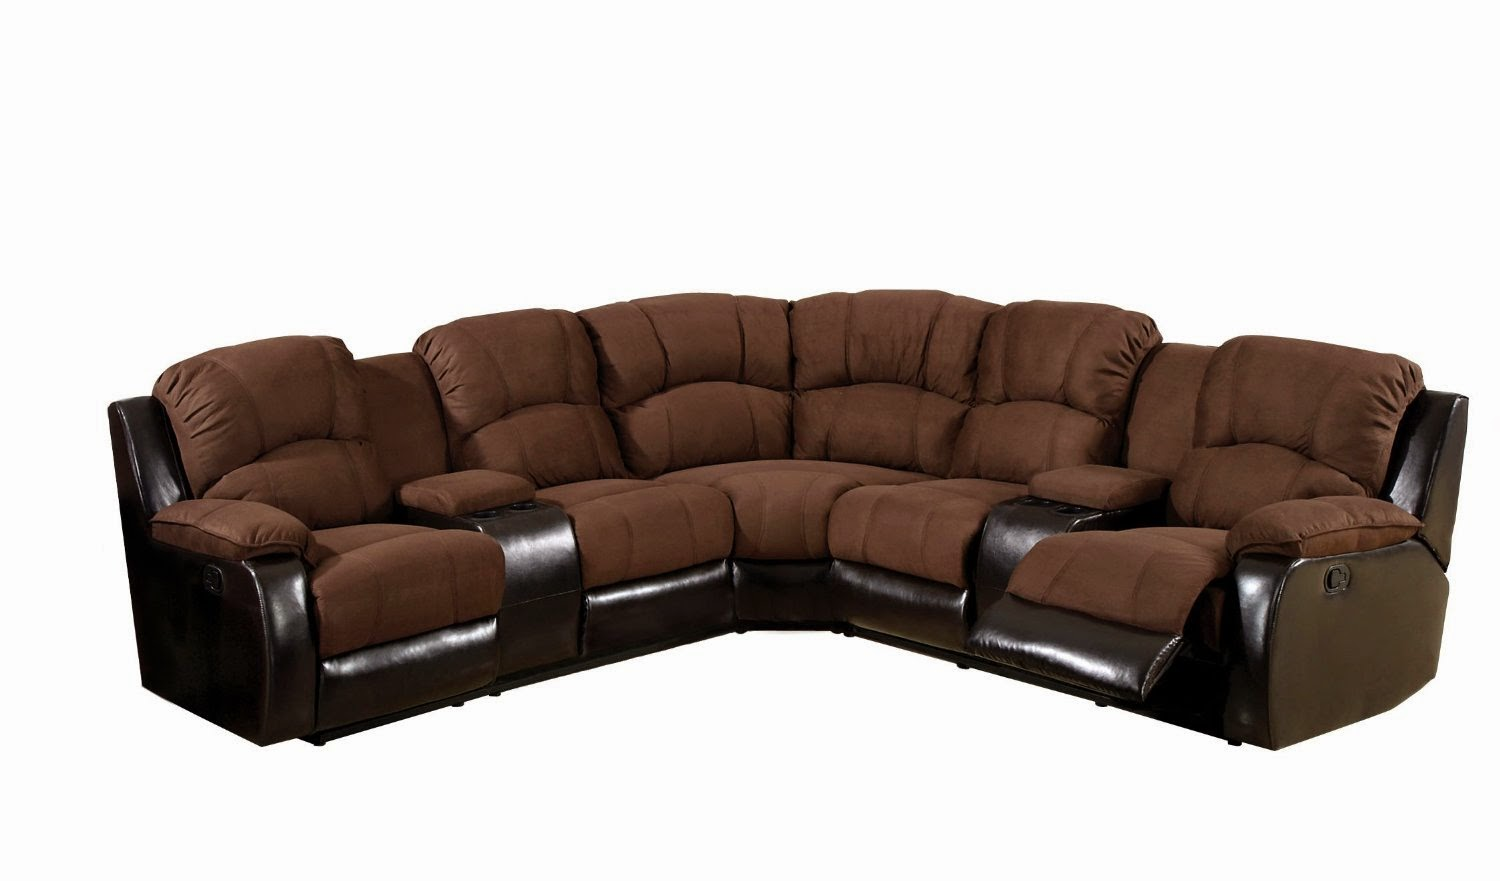 Best Recliner Sofa Brand Recommendation Wanted Reclining ...